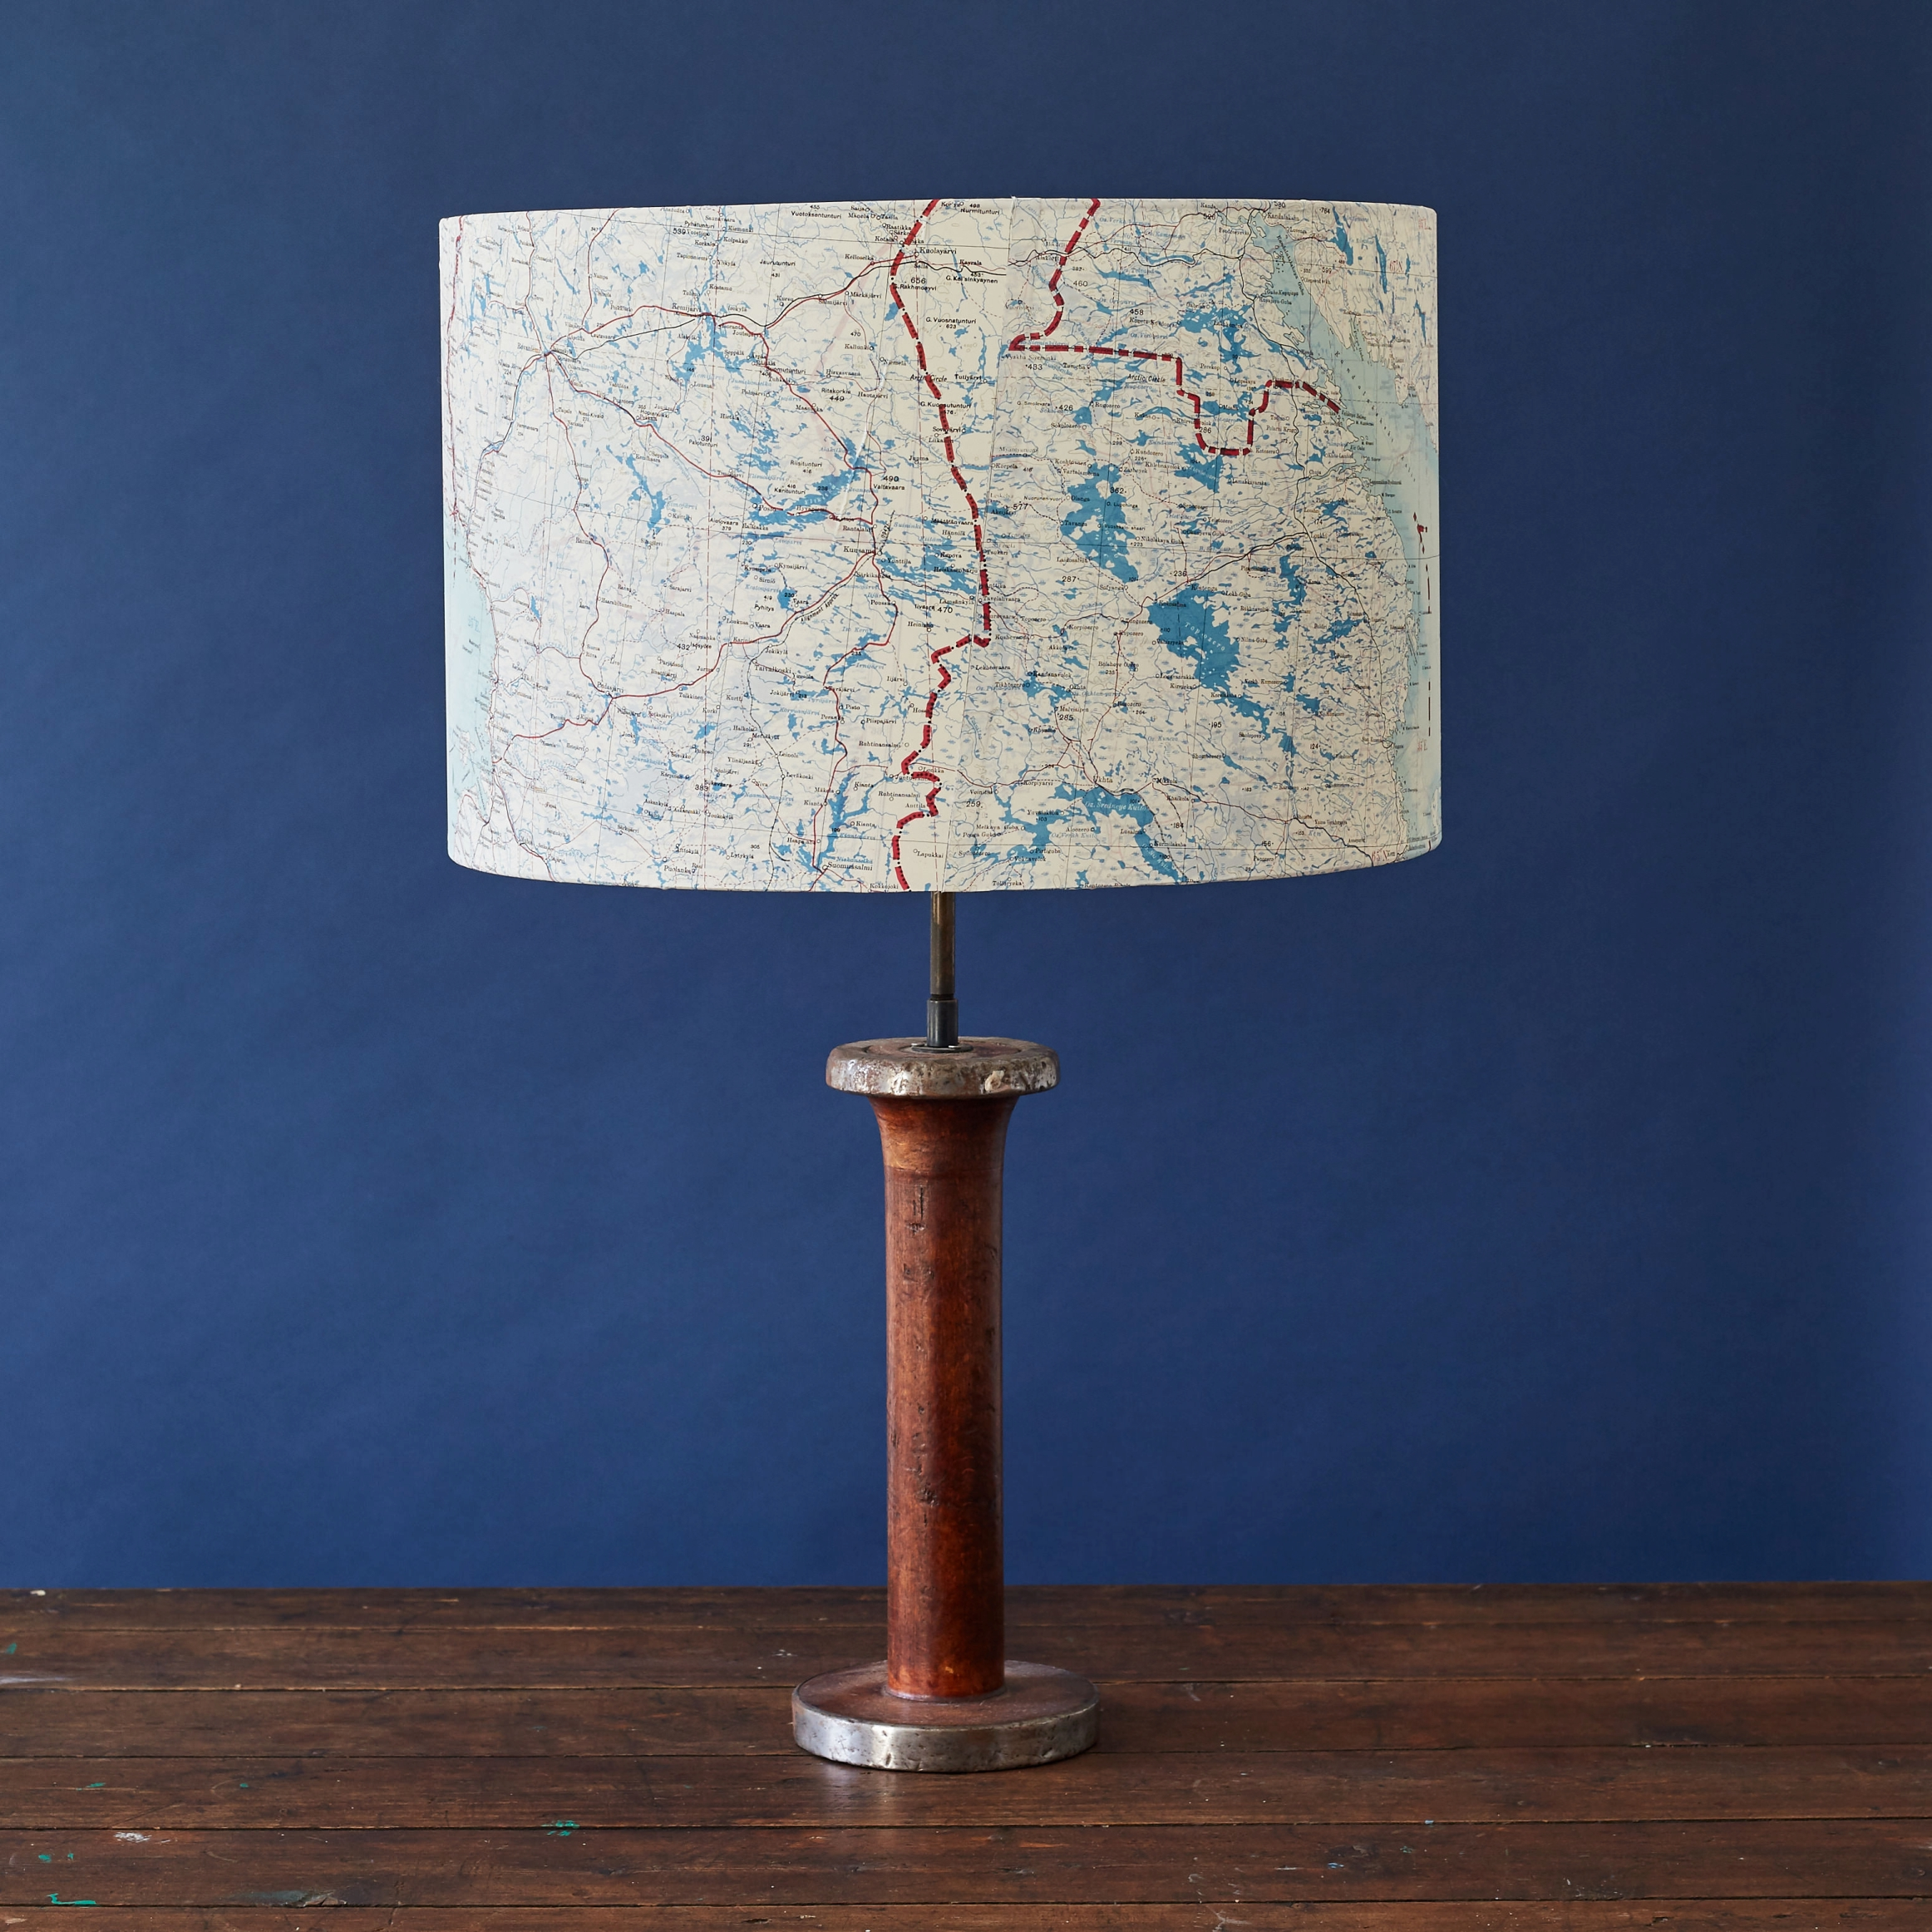 Escape and evade map lampshade